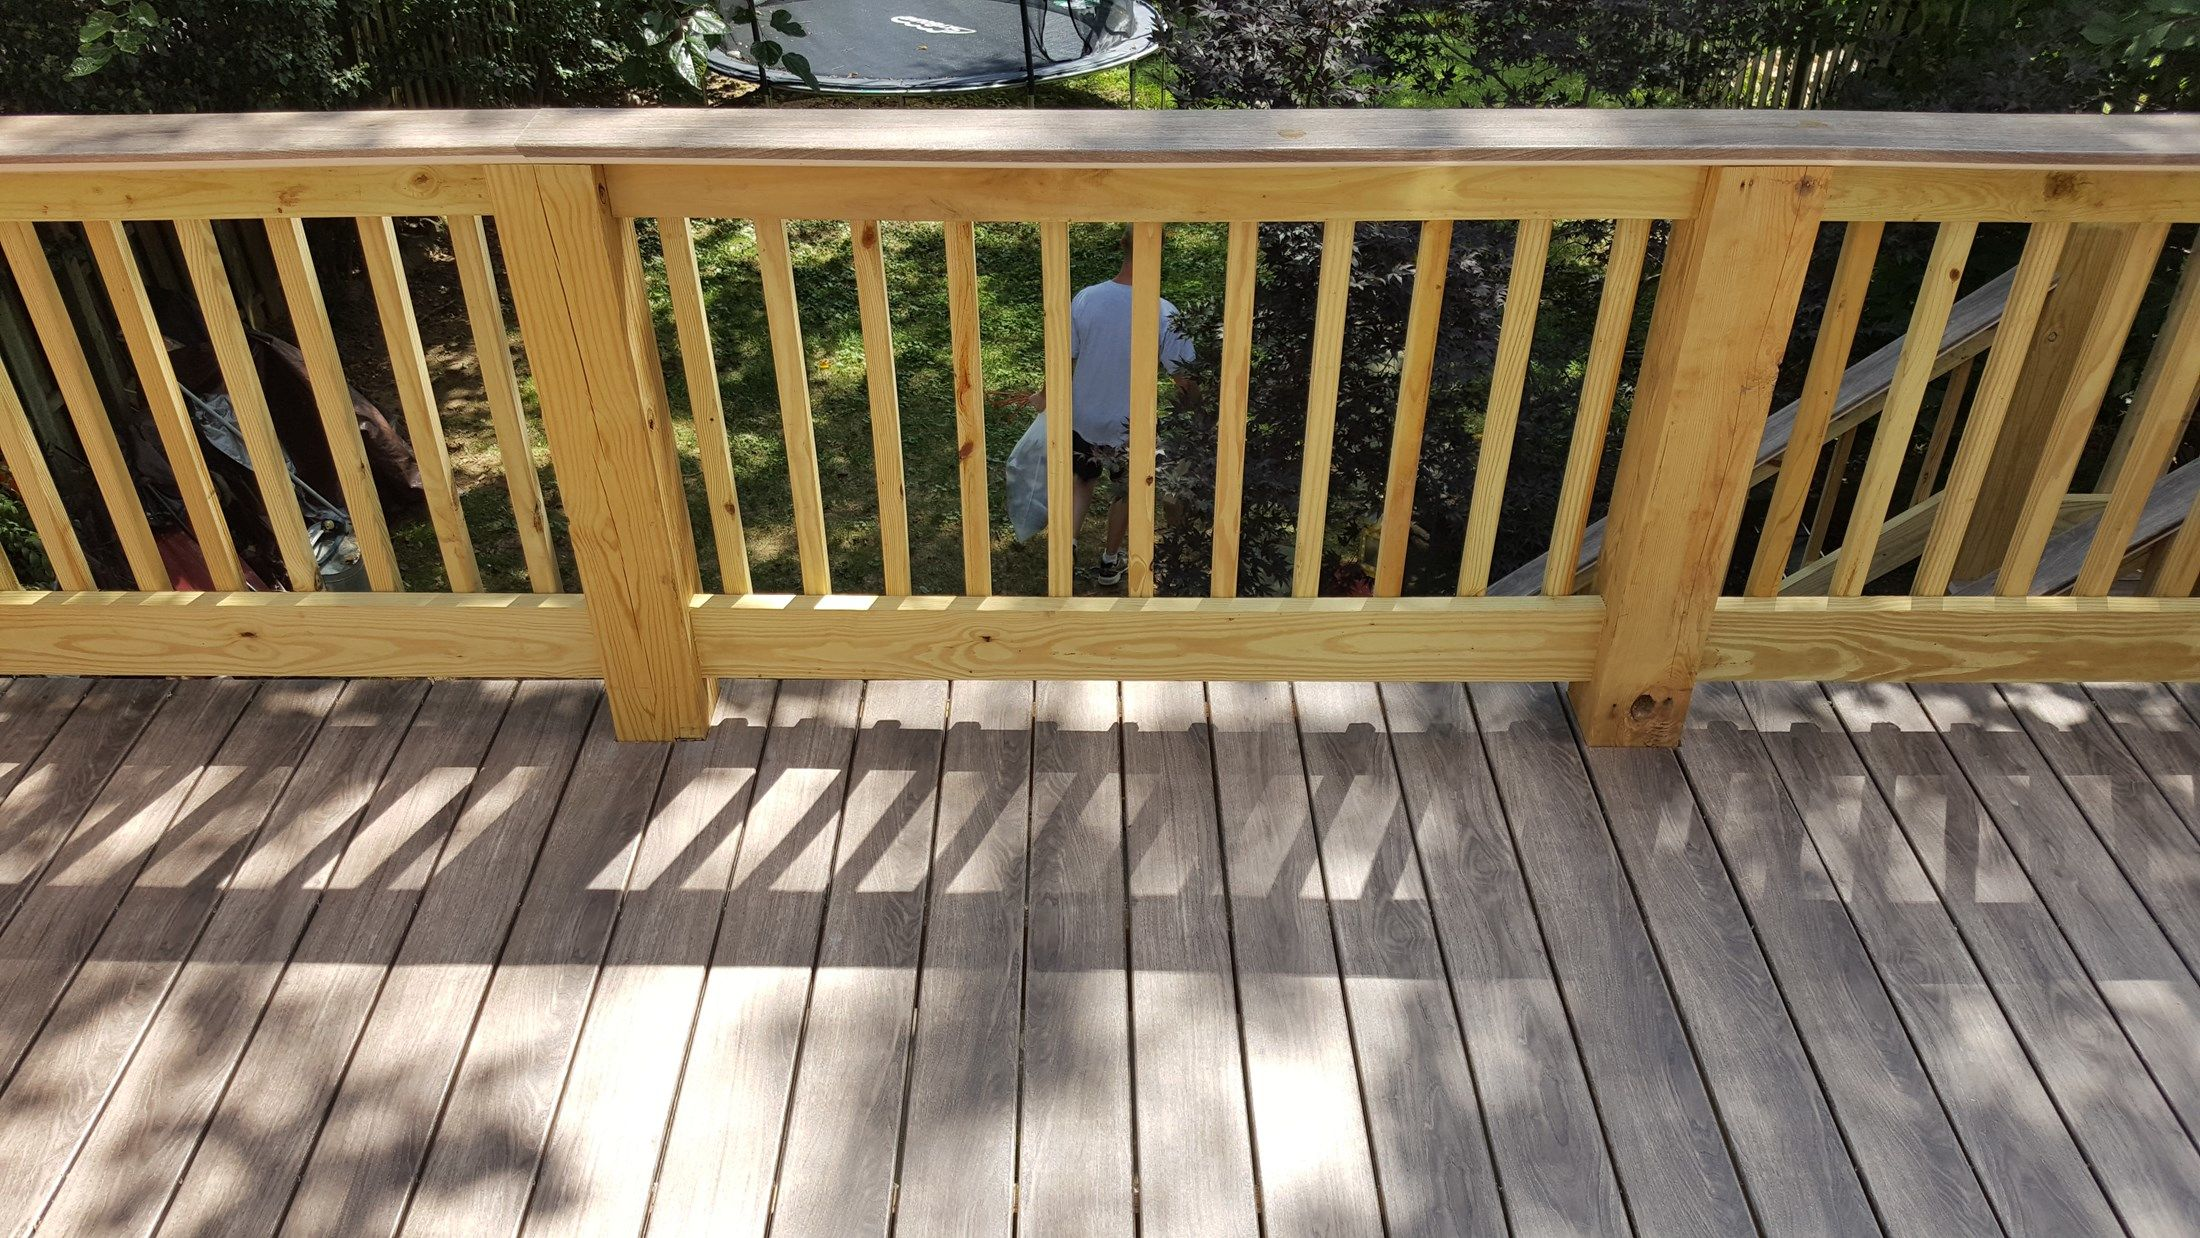 Zuri decking - Picture 6652